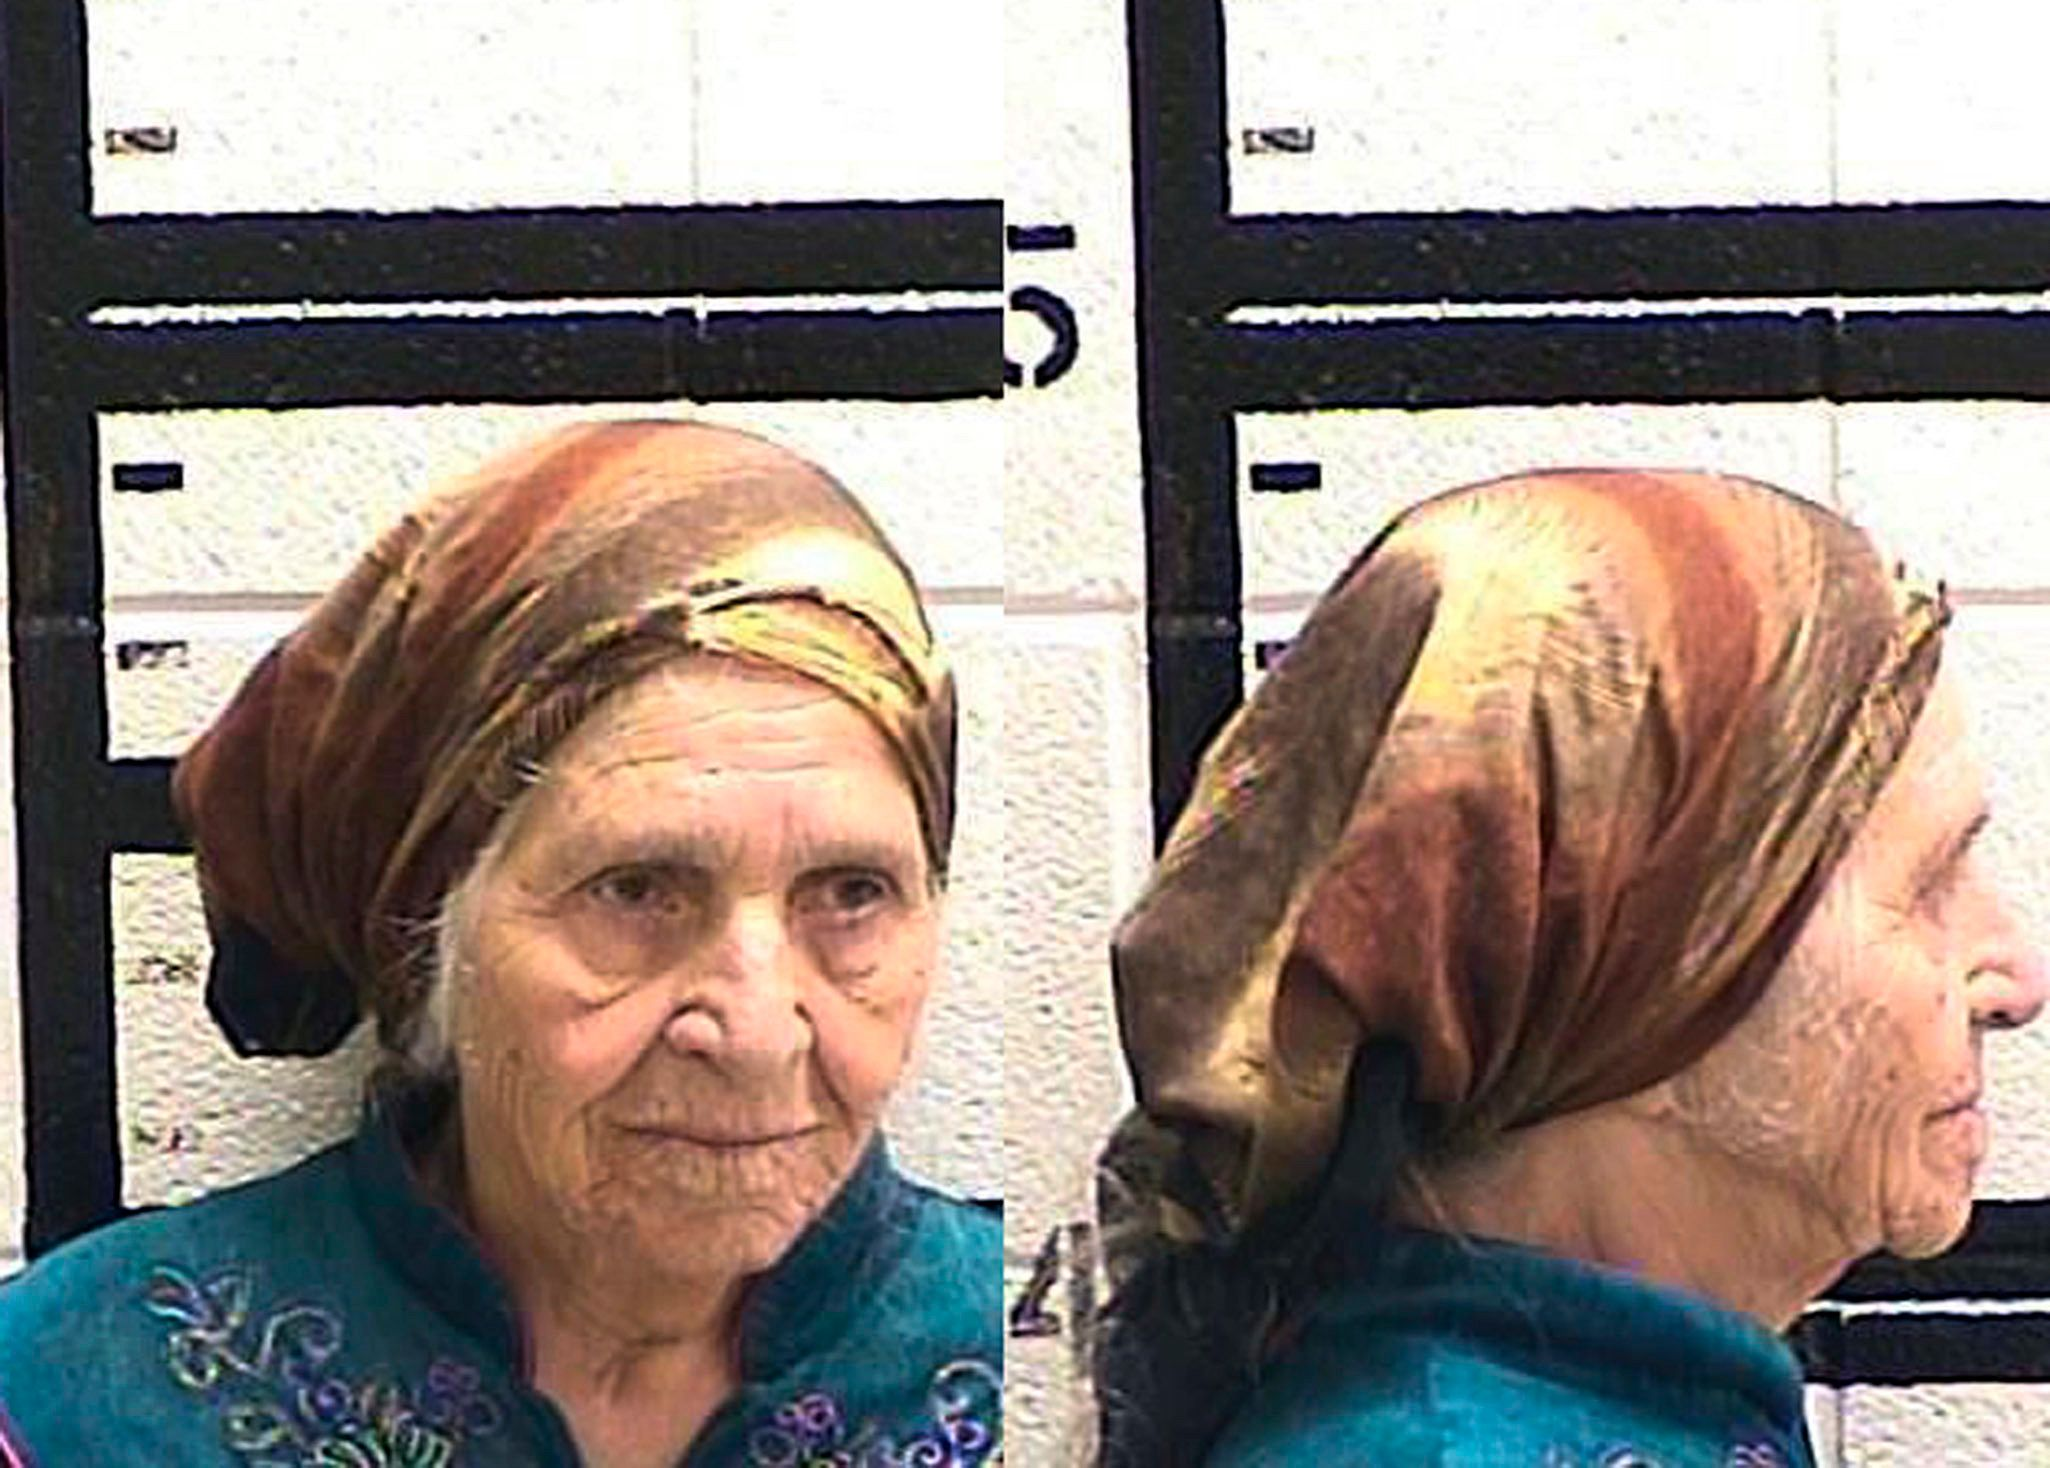 Martha Al-Bishara, 87, was charged with criminal trespass and obstructing an officer Friday after she was seen holding a